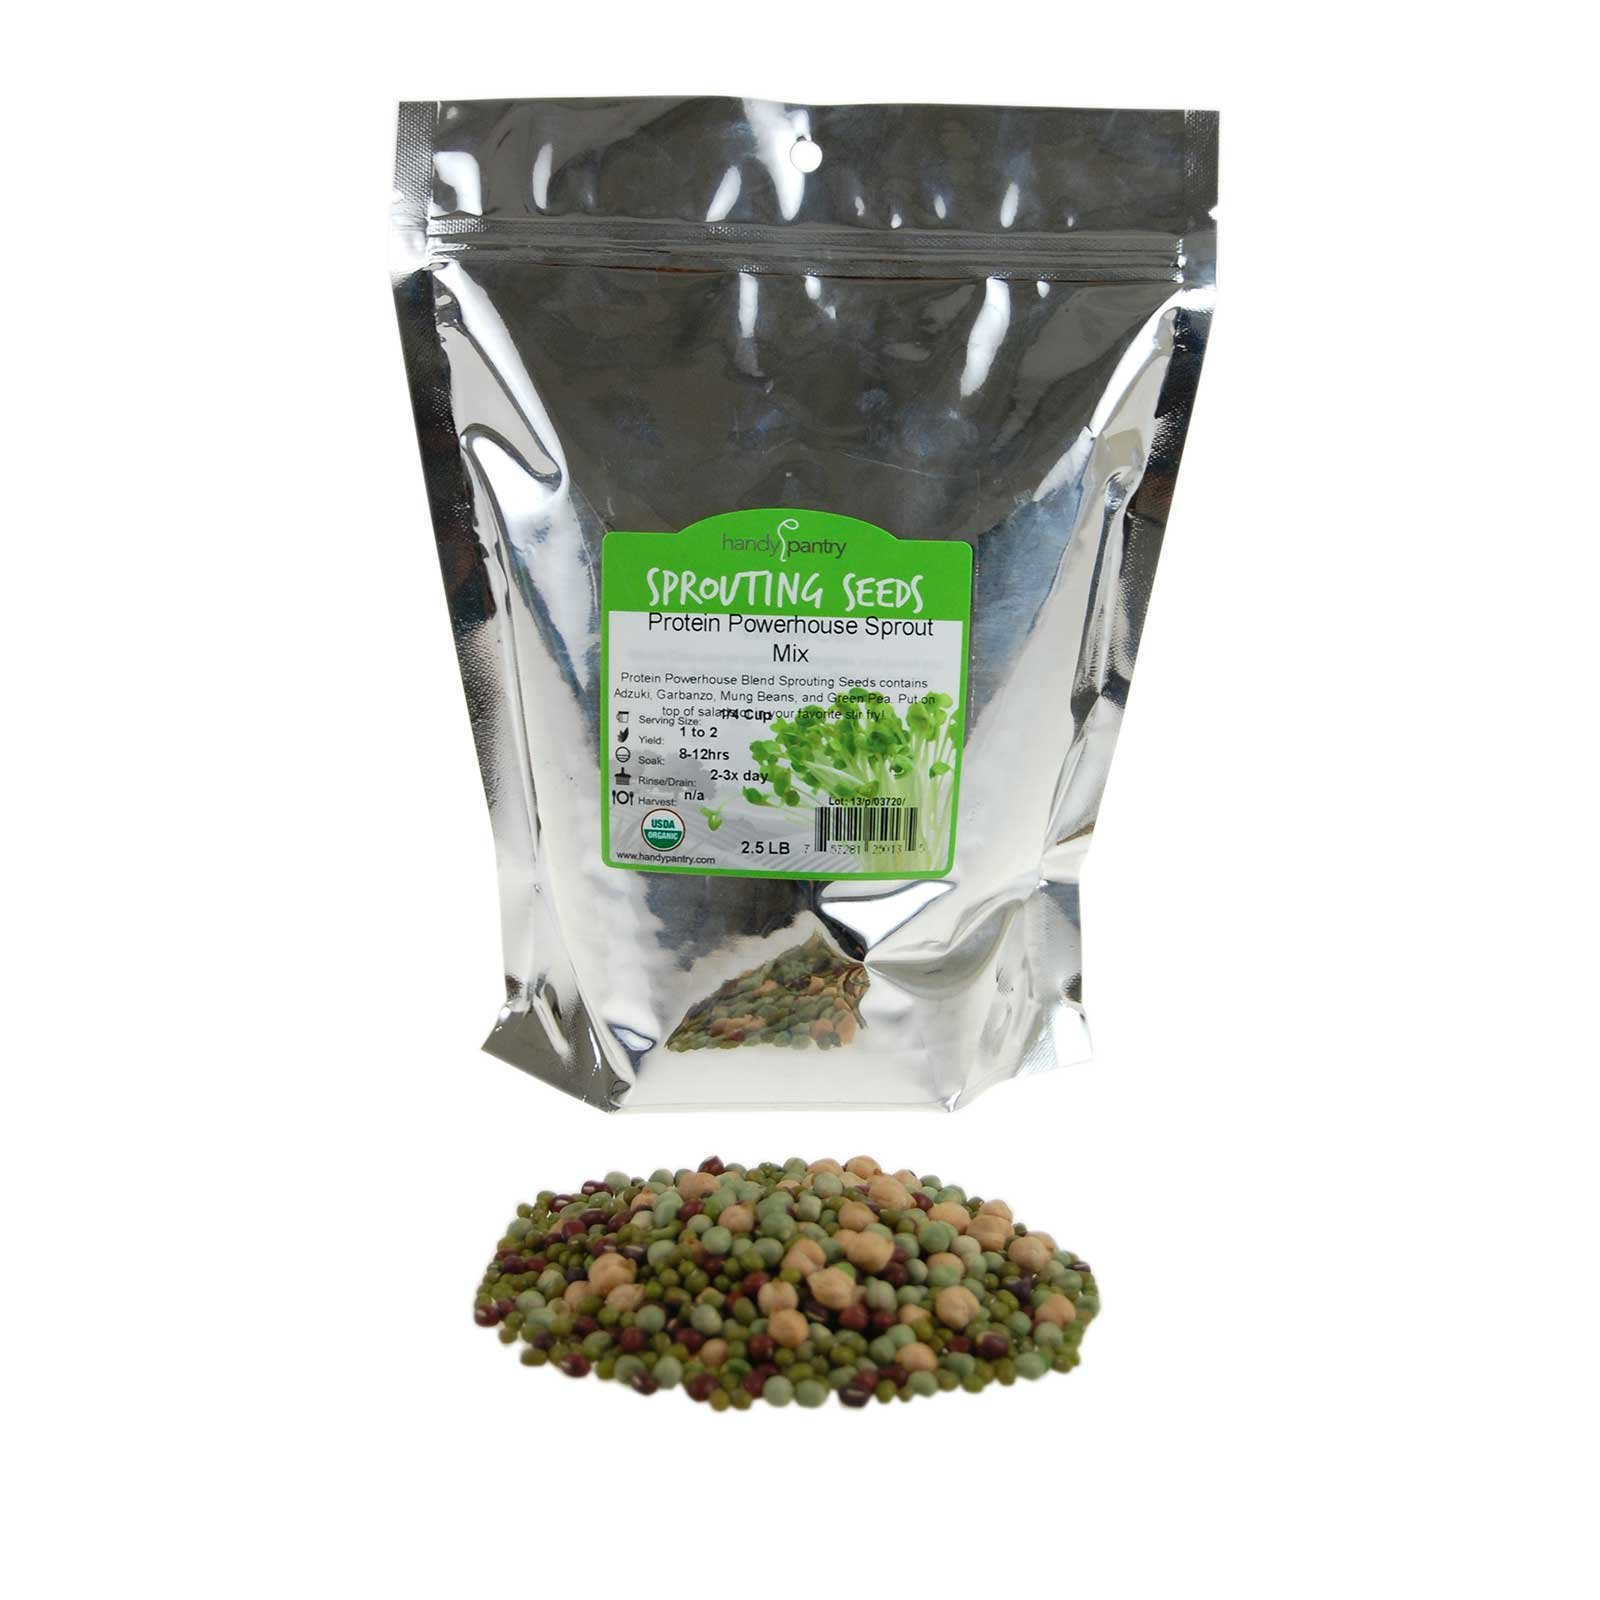 Protein Powerhouse Sprouting Seed Mix: 2.5 Lb - Organic, Non-GMO - Sprouting Sprouts, Food Storage. High Protien Sprouts - Pea, Mung, Green Pea, Adzuki